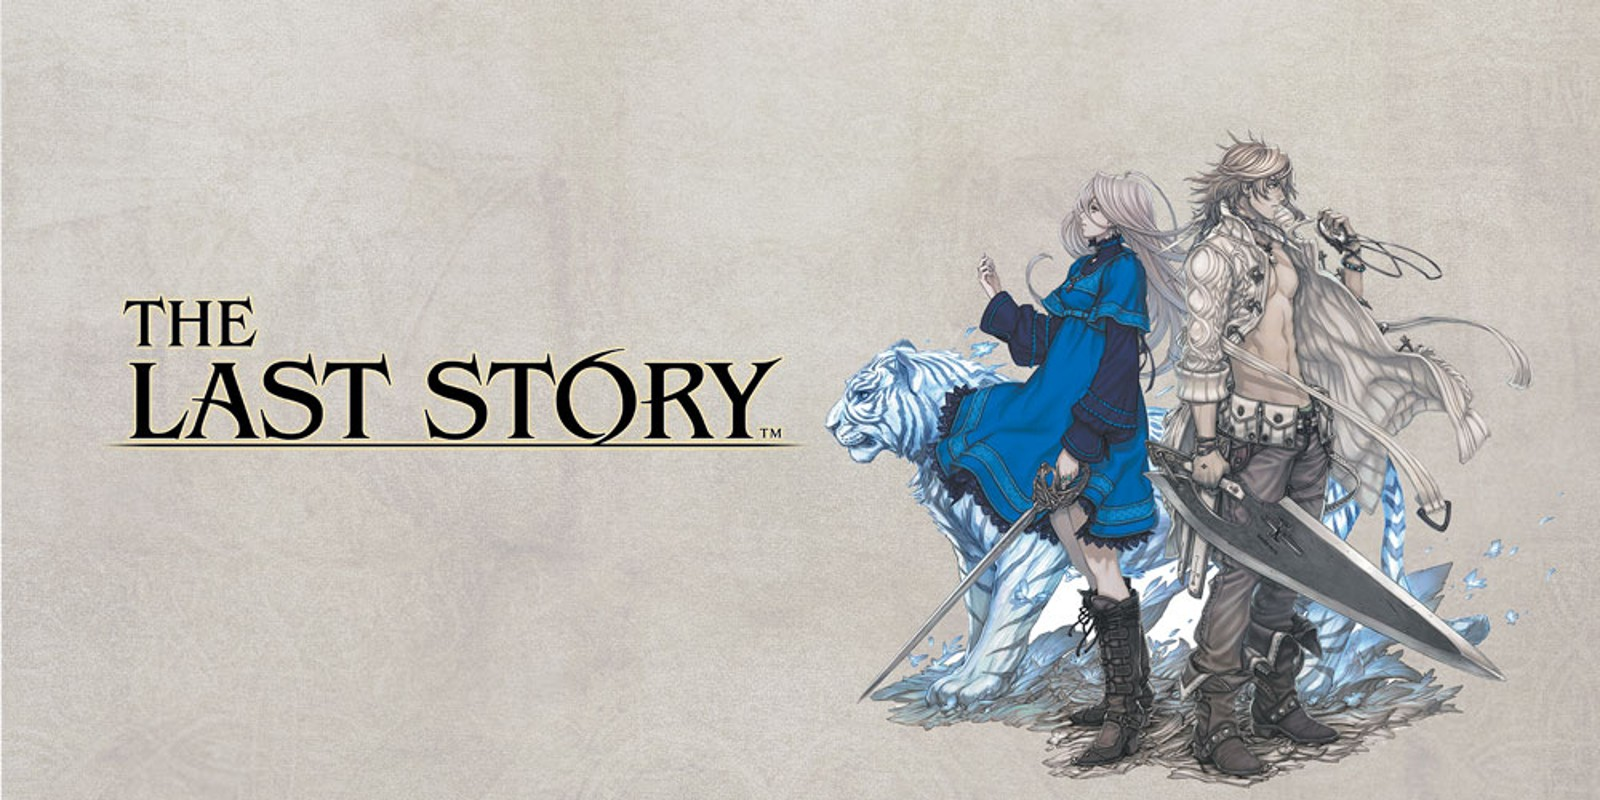 Mistwalker head would rather 'build something new' than re-release Blue Dragon or The Last Story screenshot